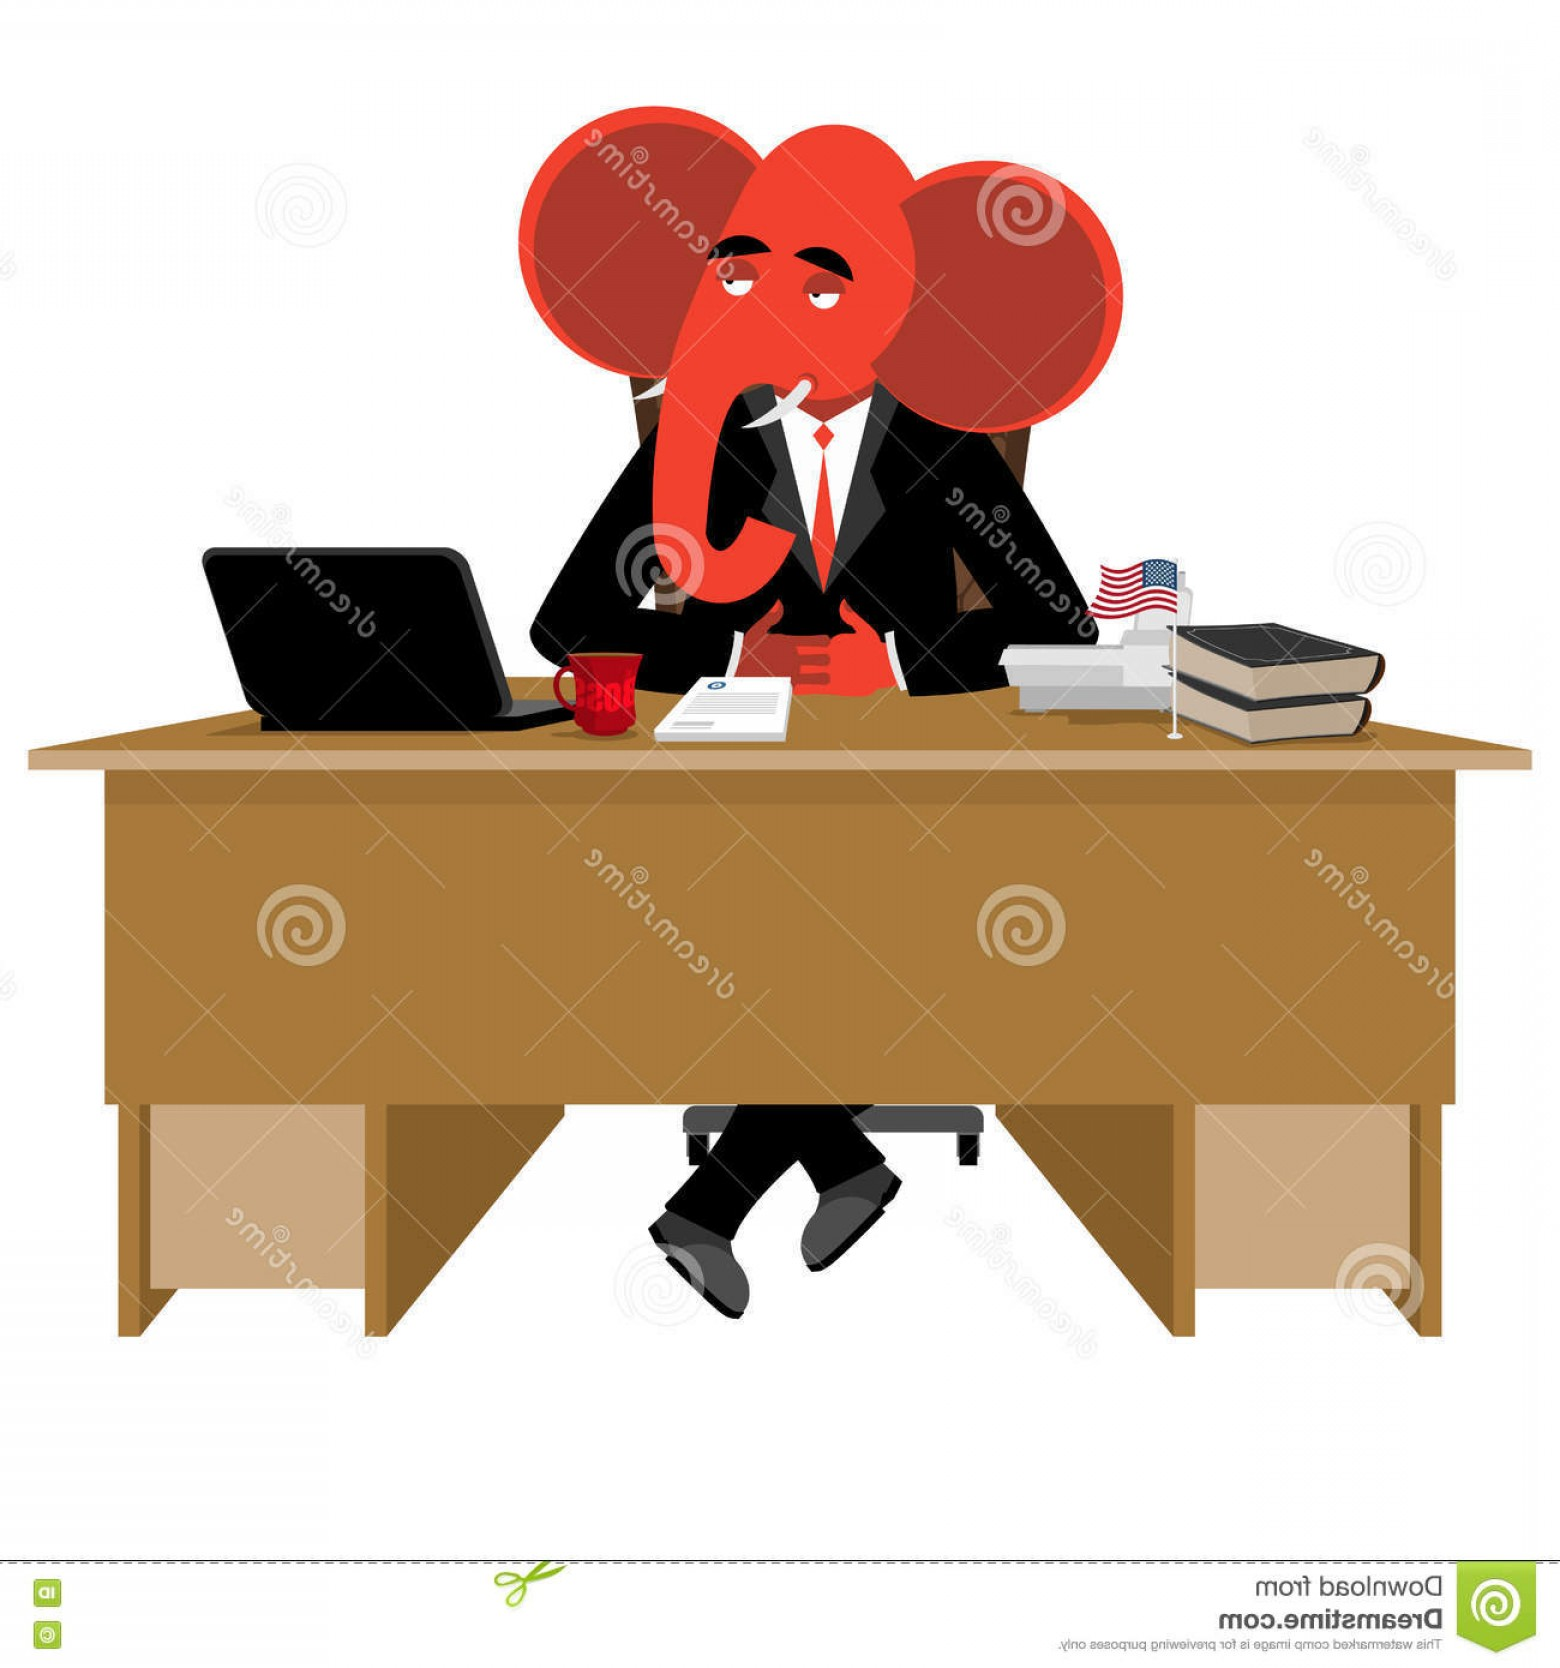 Republican Elephant Vector: Stock Illustration Red Elephant Republican Sitting Office Animal Boss Table Symbol United States Political Parties Illustration Image